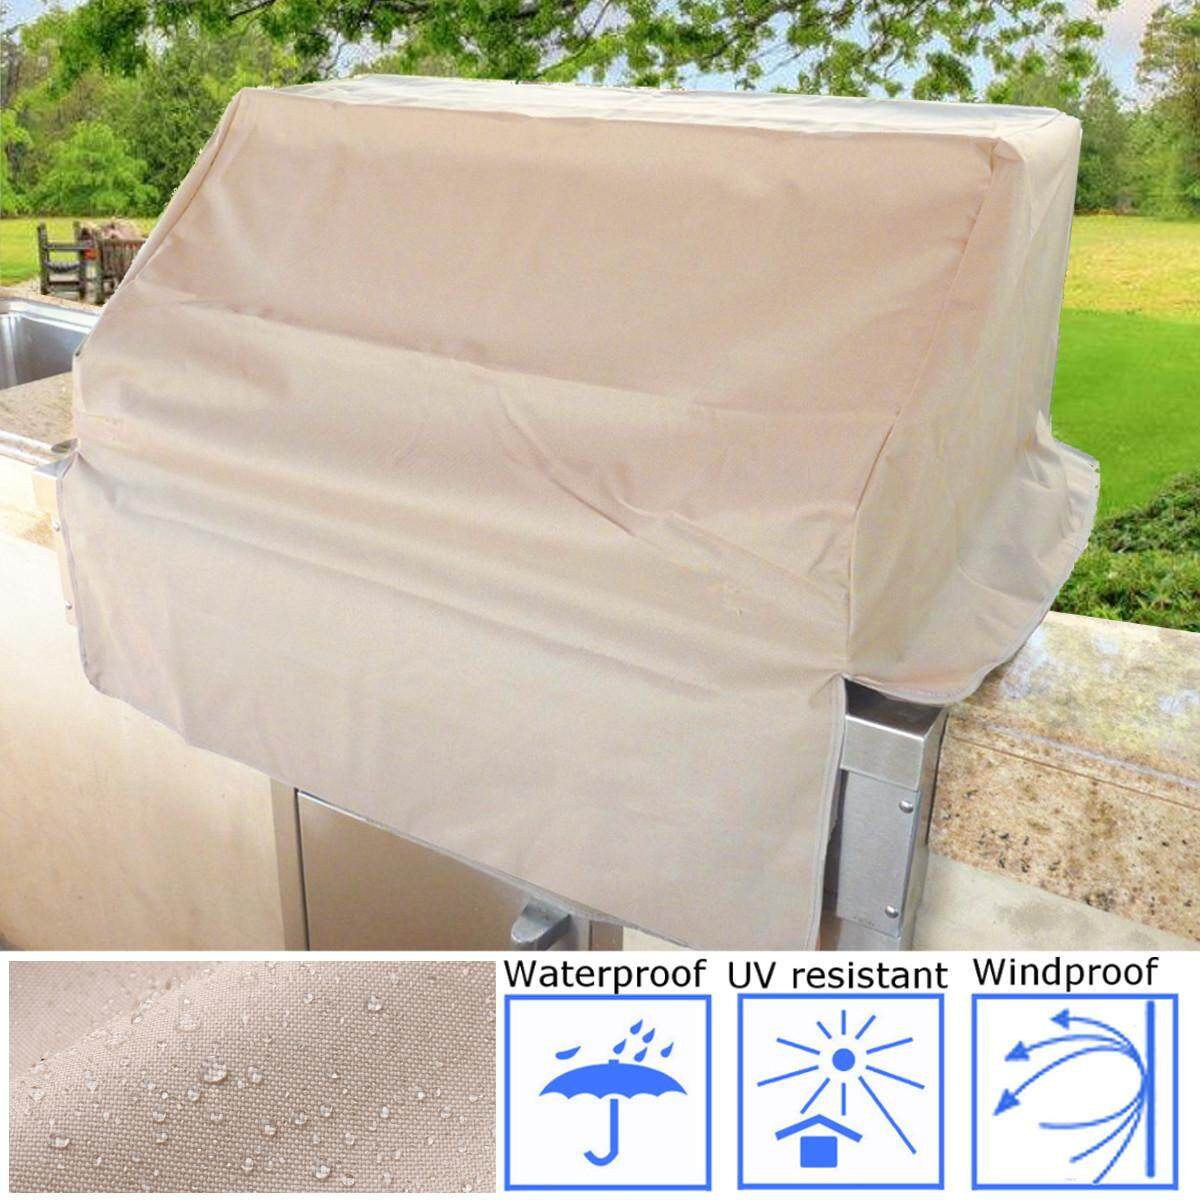 Outdoor BBQ Island Built-in Gas Grill Head/Top Cover - Fits up to 30 Taupe - intl